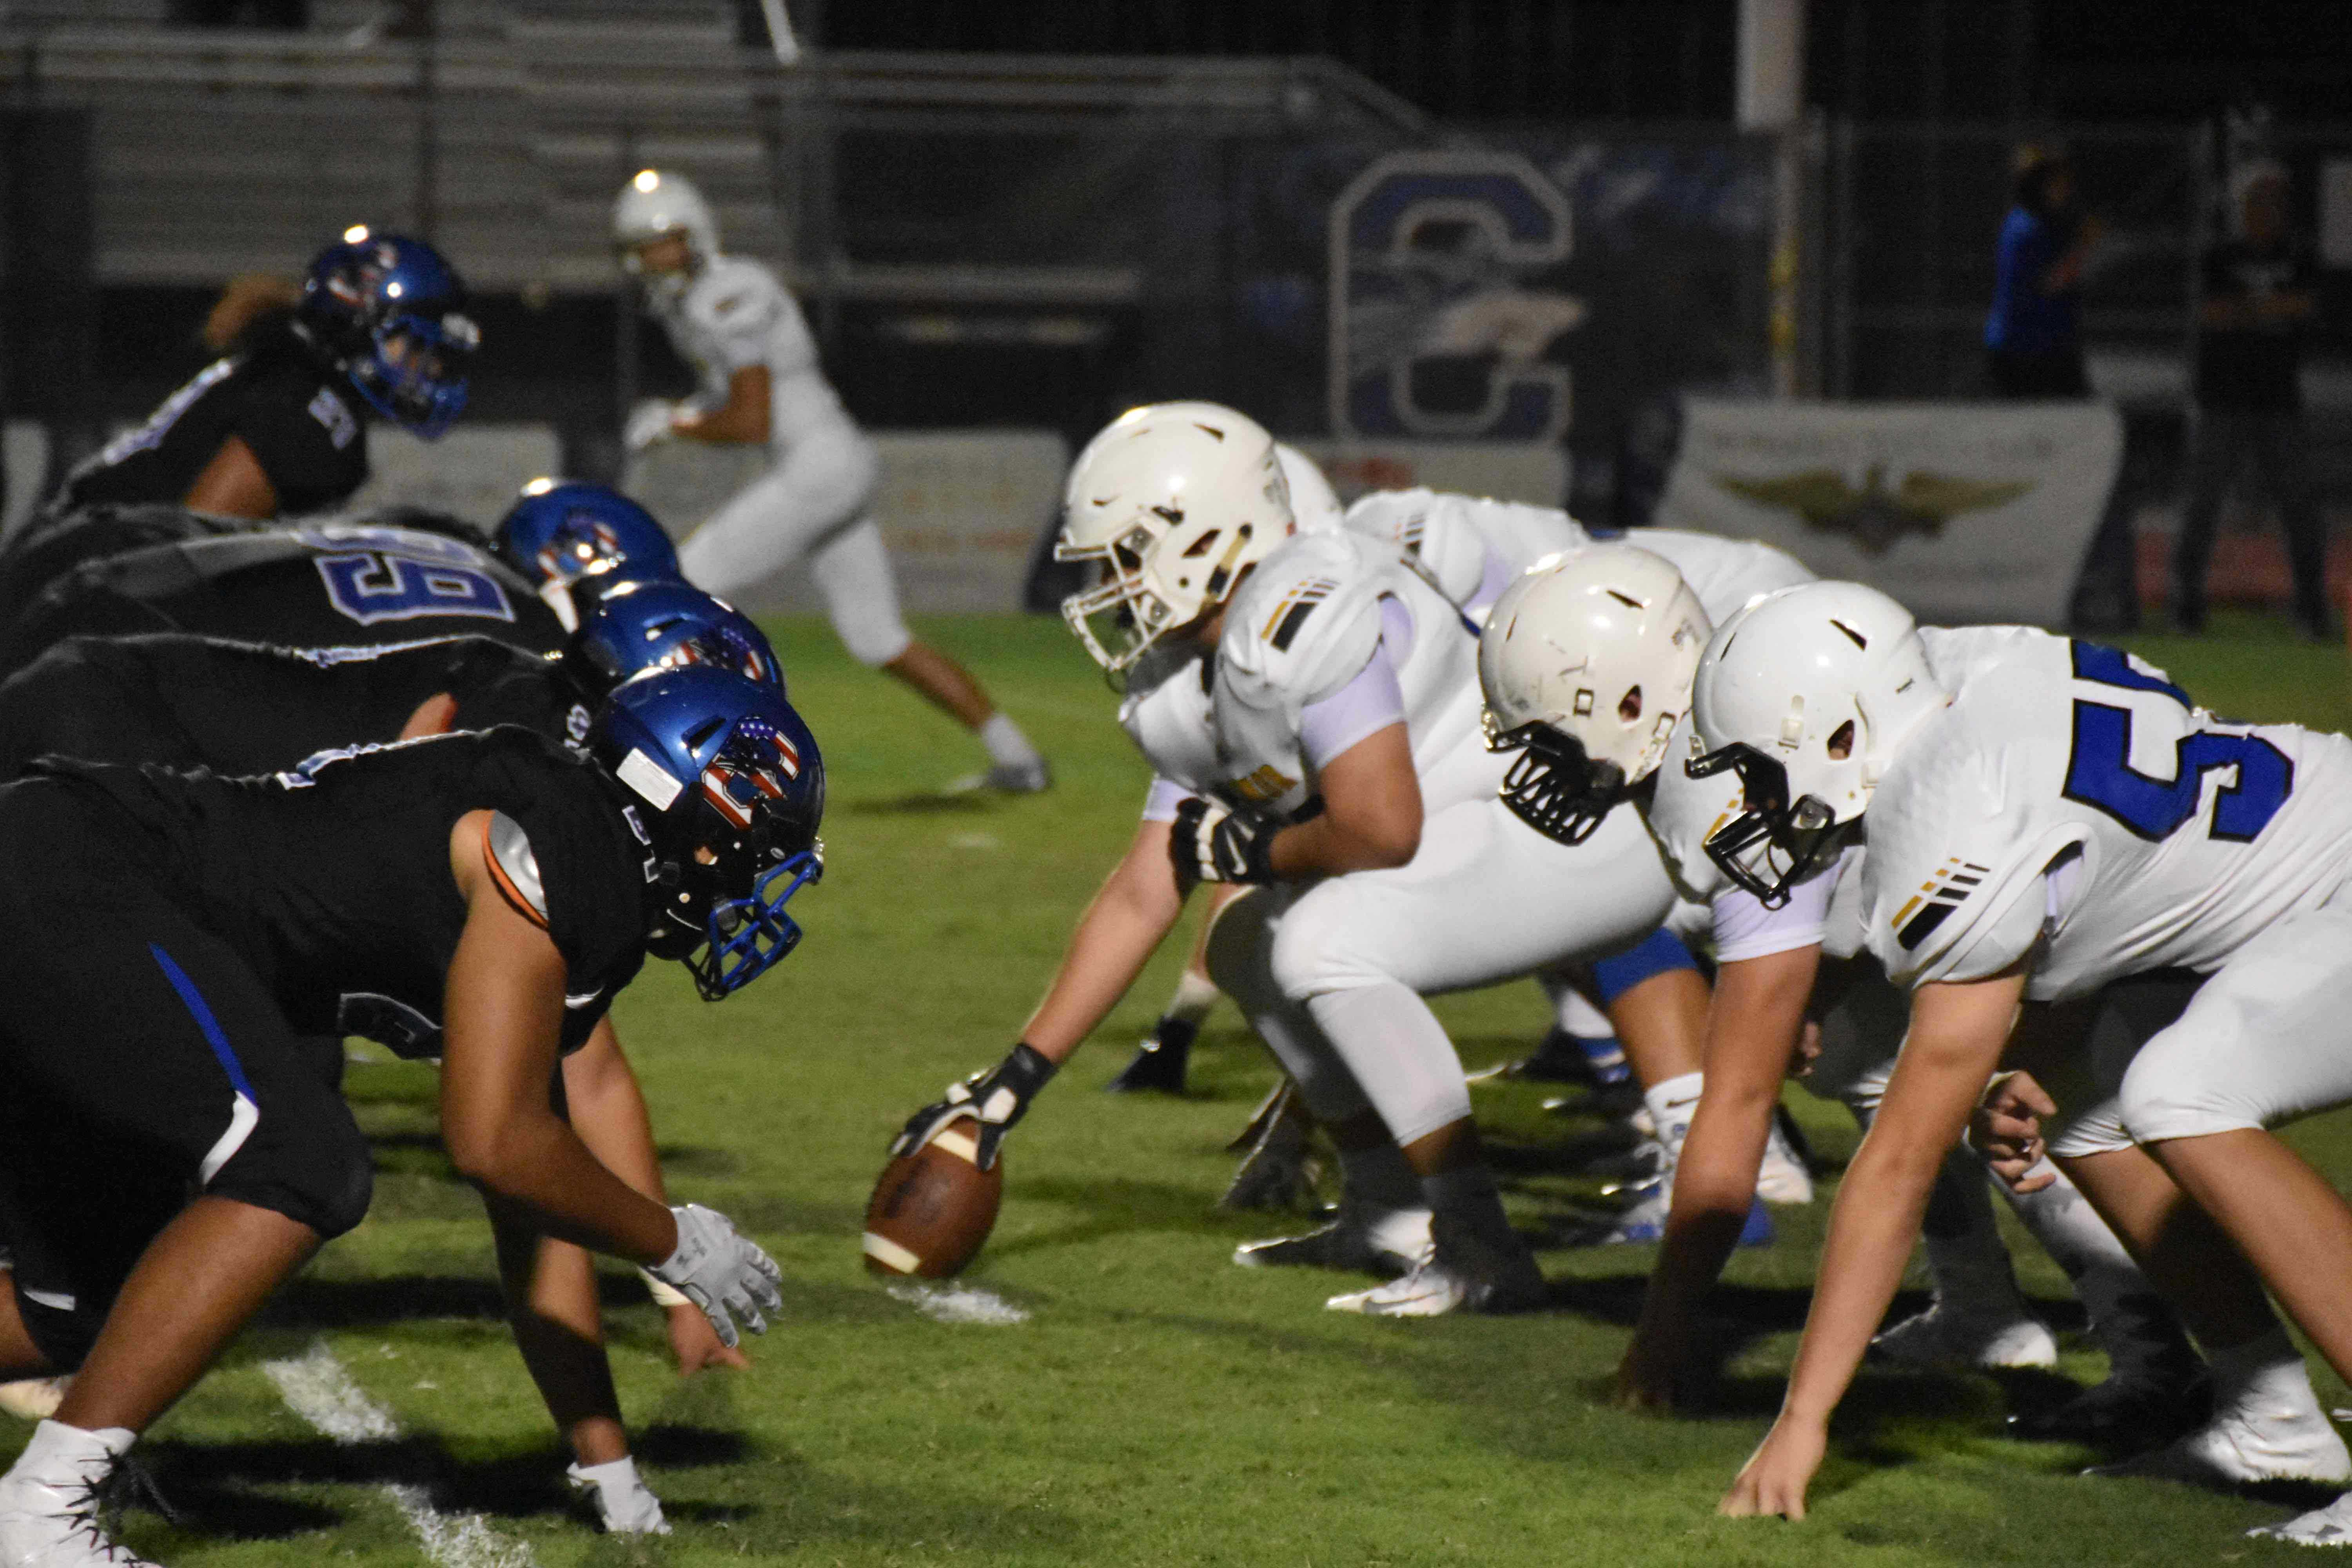 Ben Fuenmayor, sophomore, prepares to snap the ball in the game against Chandler.